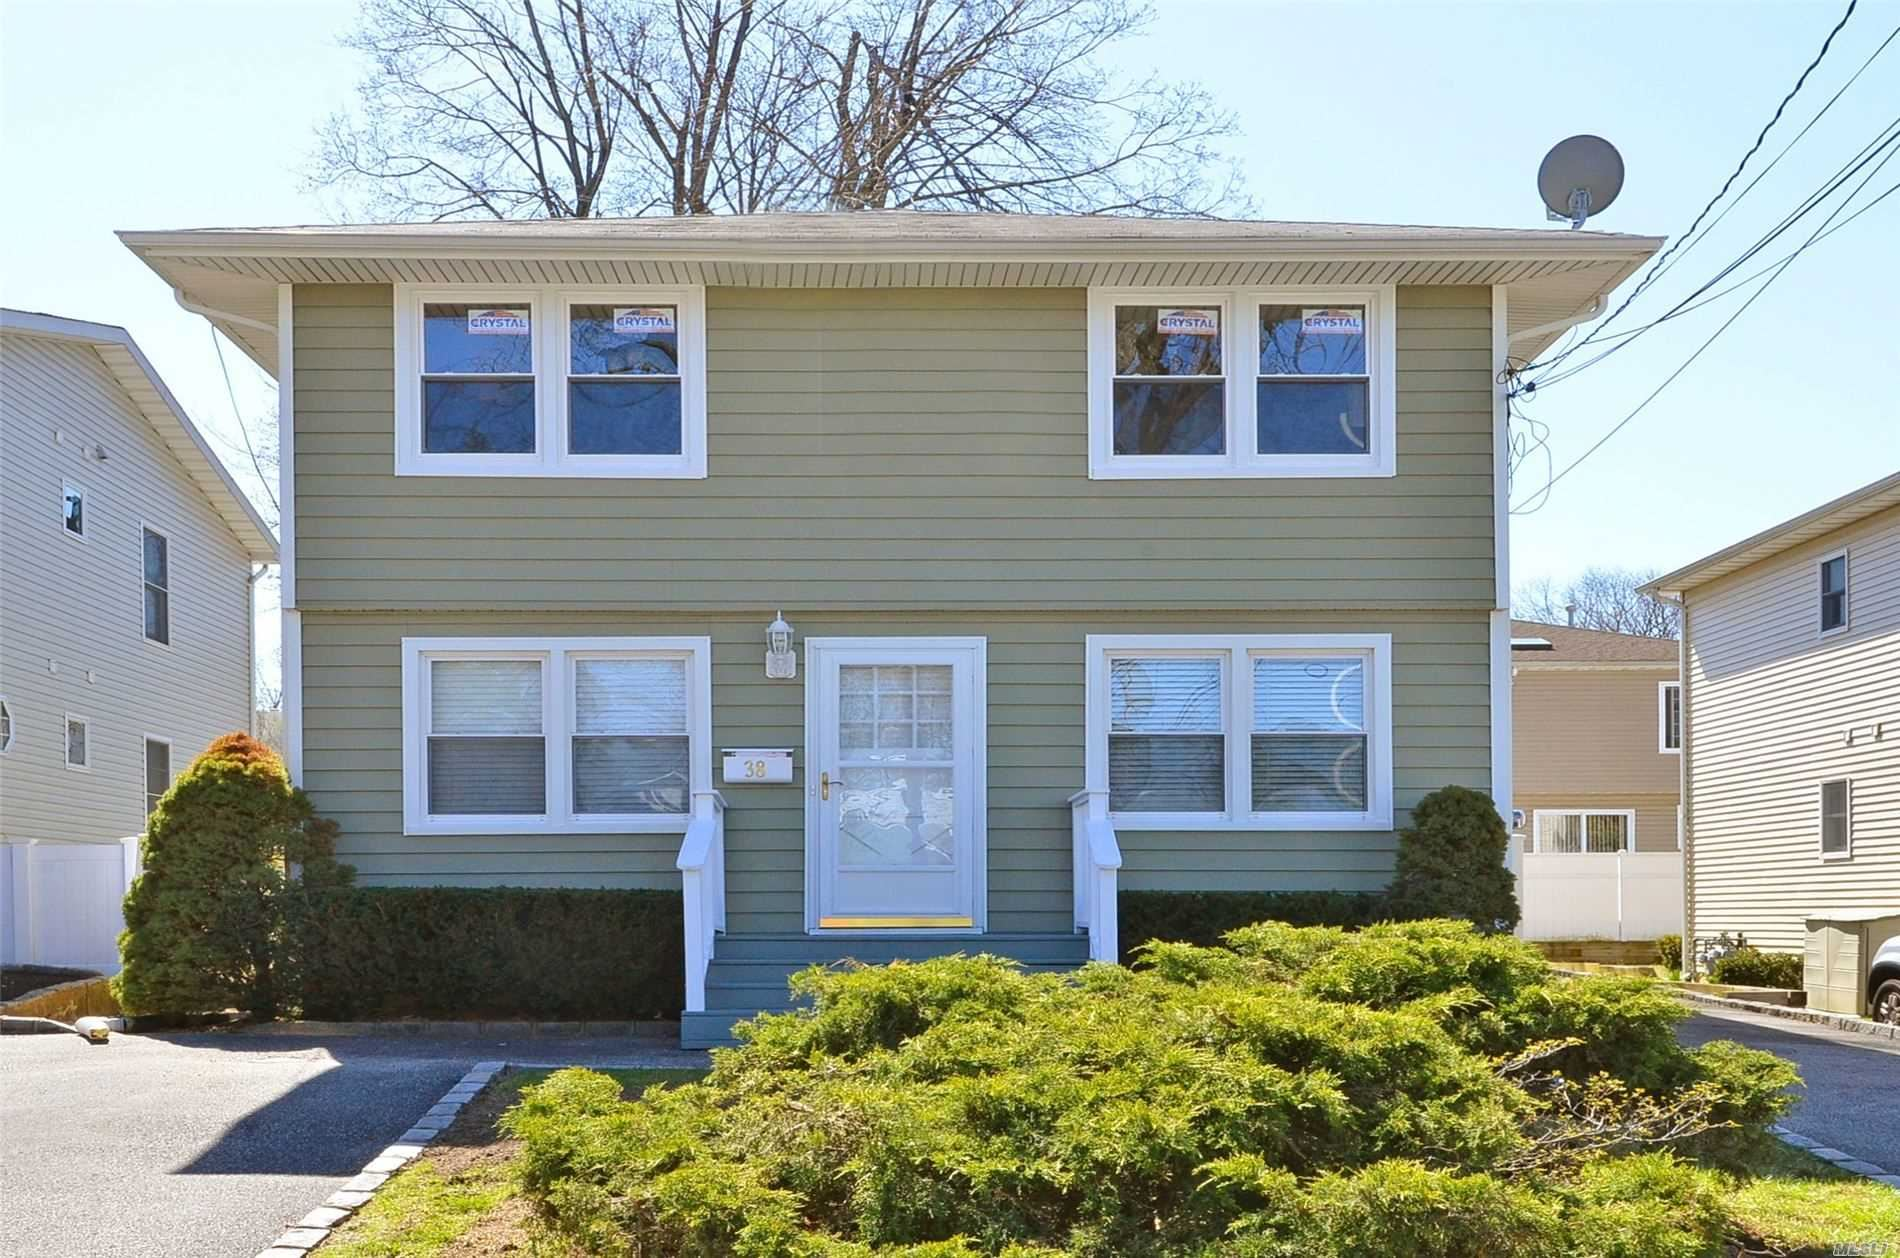 38 Mohegan Ave, Port Washington, NY 11050 - MLS#: 3225809